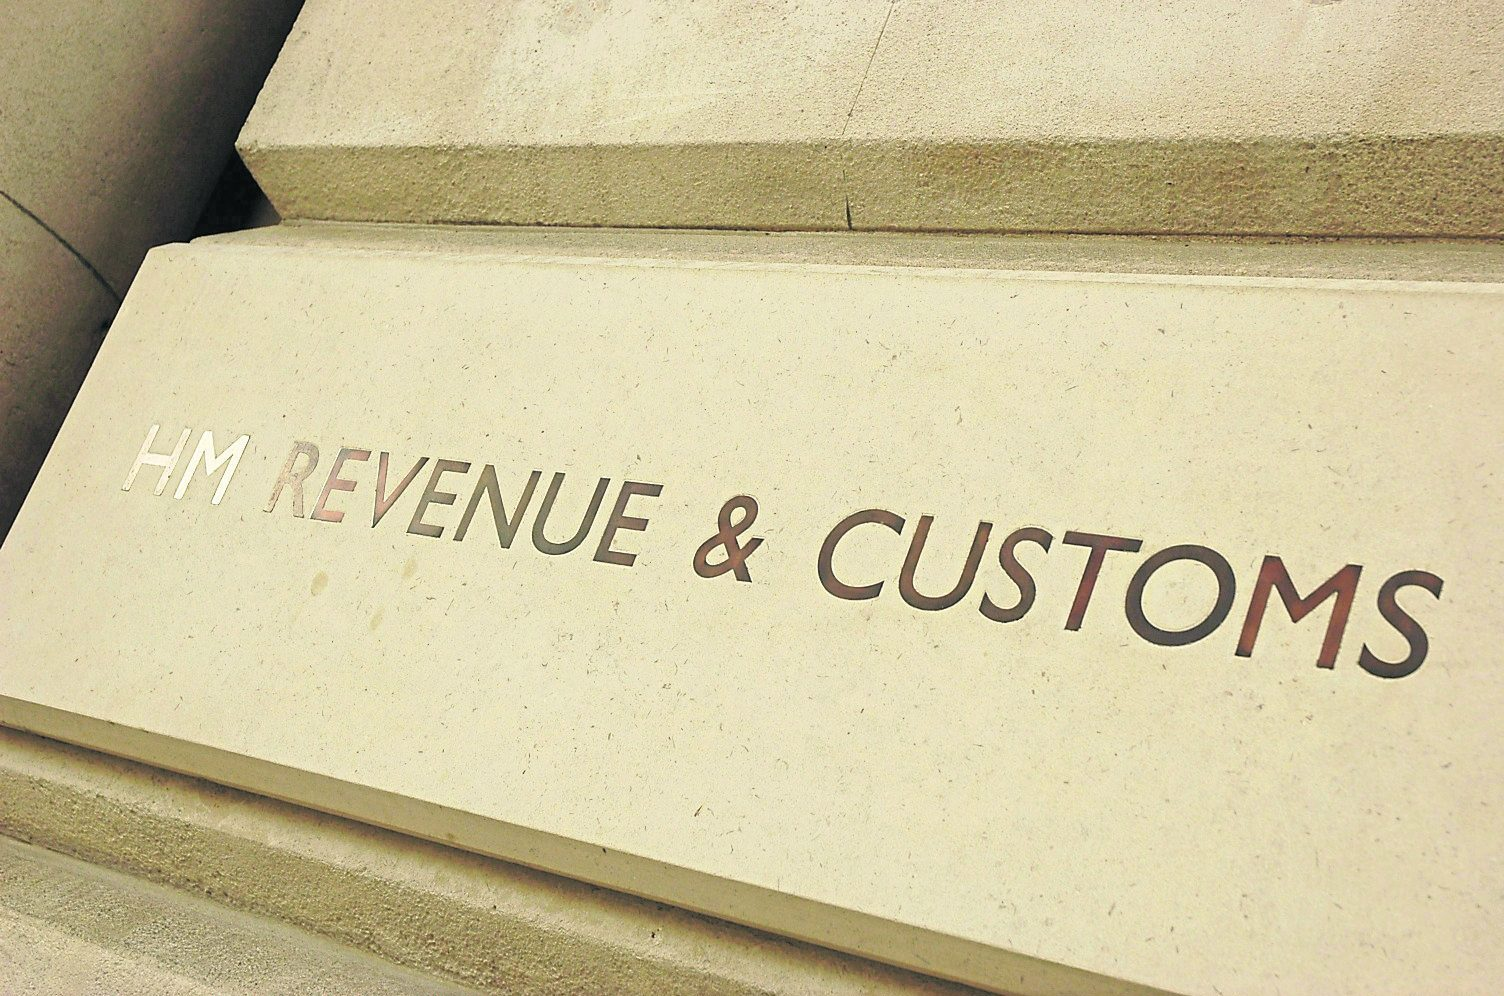 Rex Features. Mandatory Credit: Photo by Nicholas Bailey/REX/Shutterstock (659721k) HM Revenue and Customs, Parliament Street, London, England, Britain Various - Oct 2006